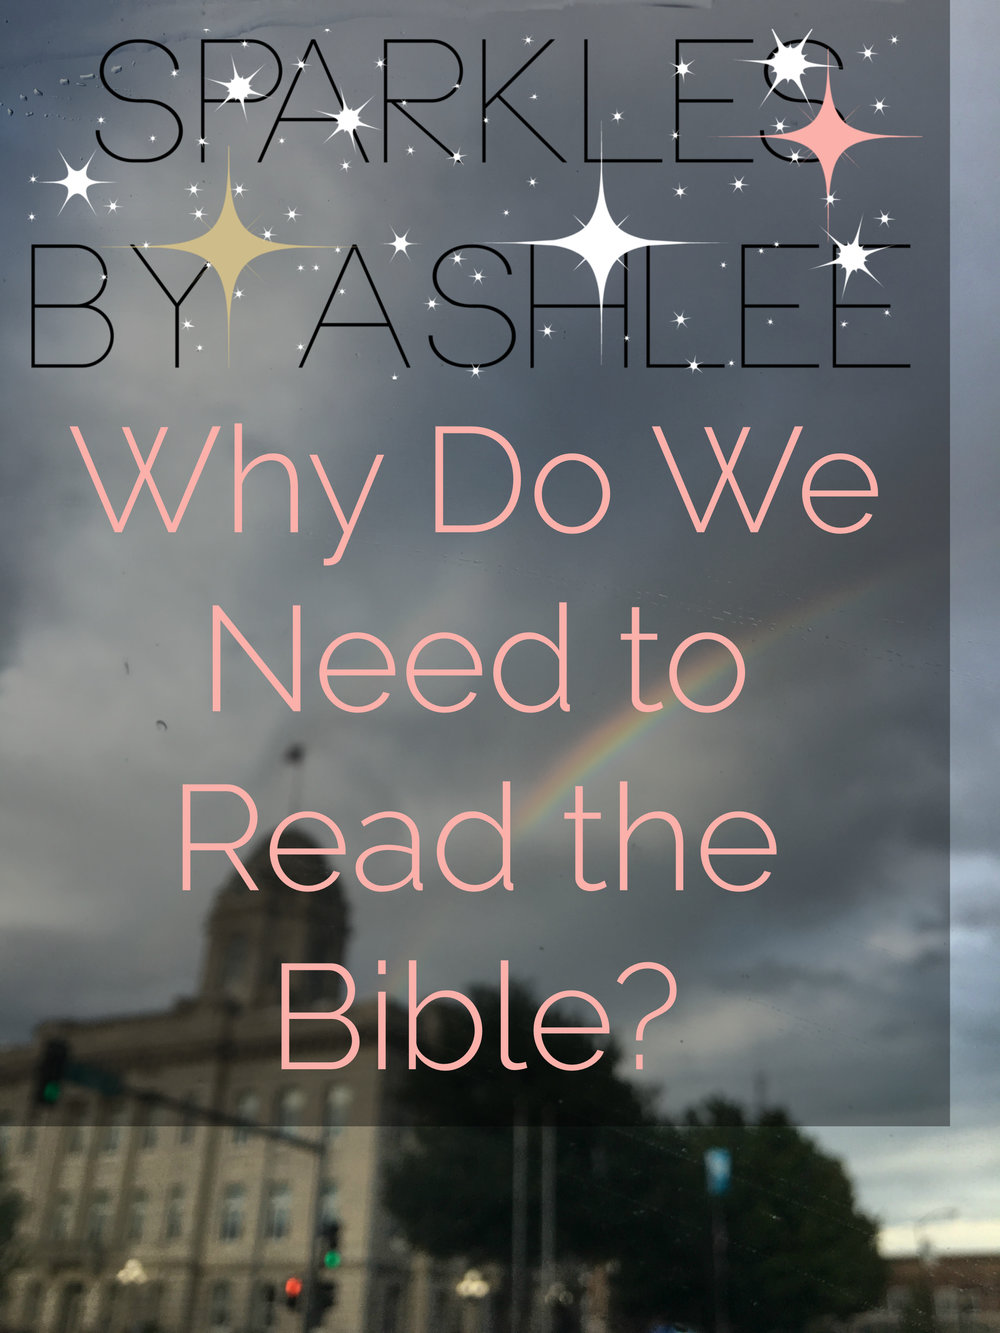 Why-We-Need-to-Read-the-Bible-Sparkles-by-Ashlee.jpg